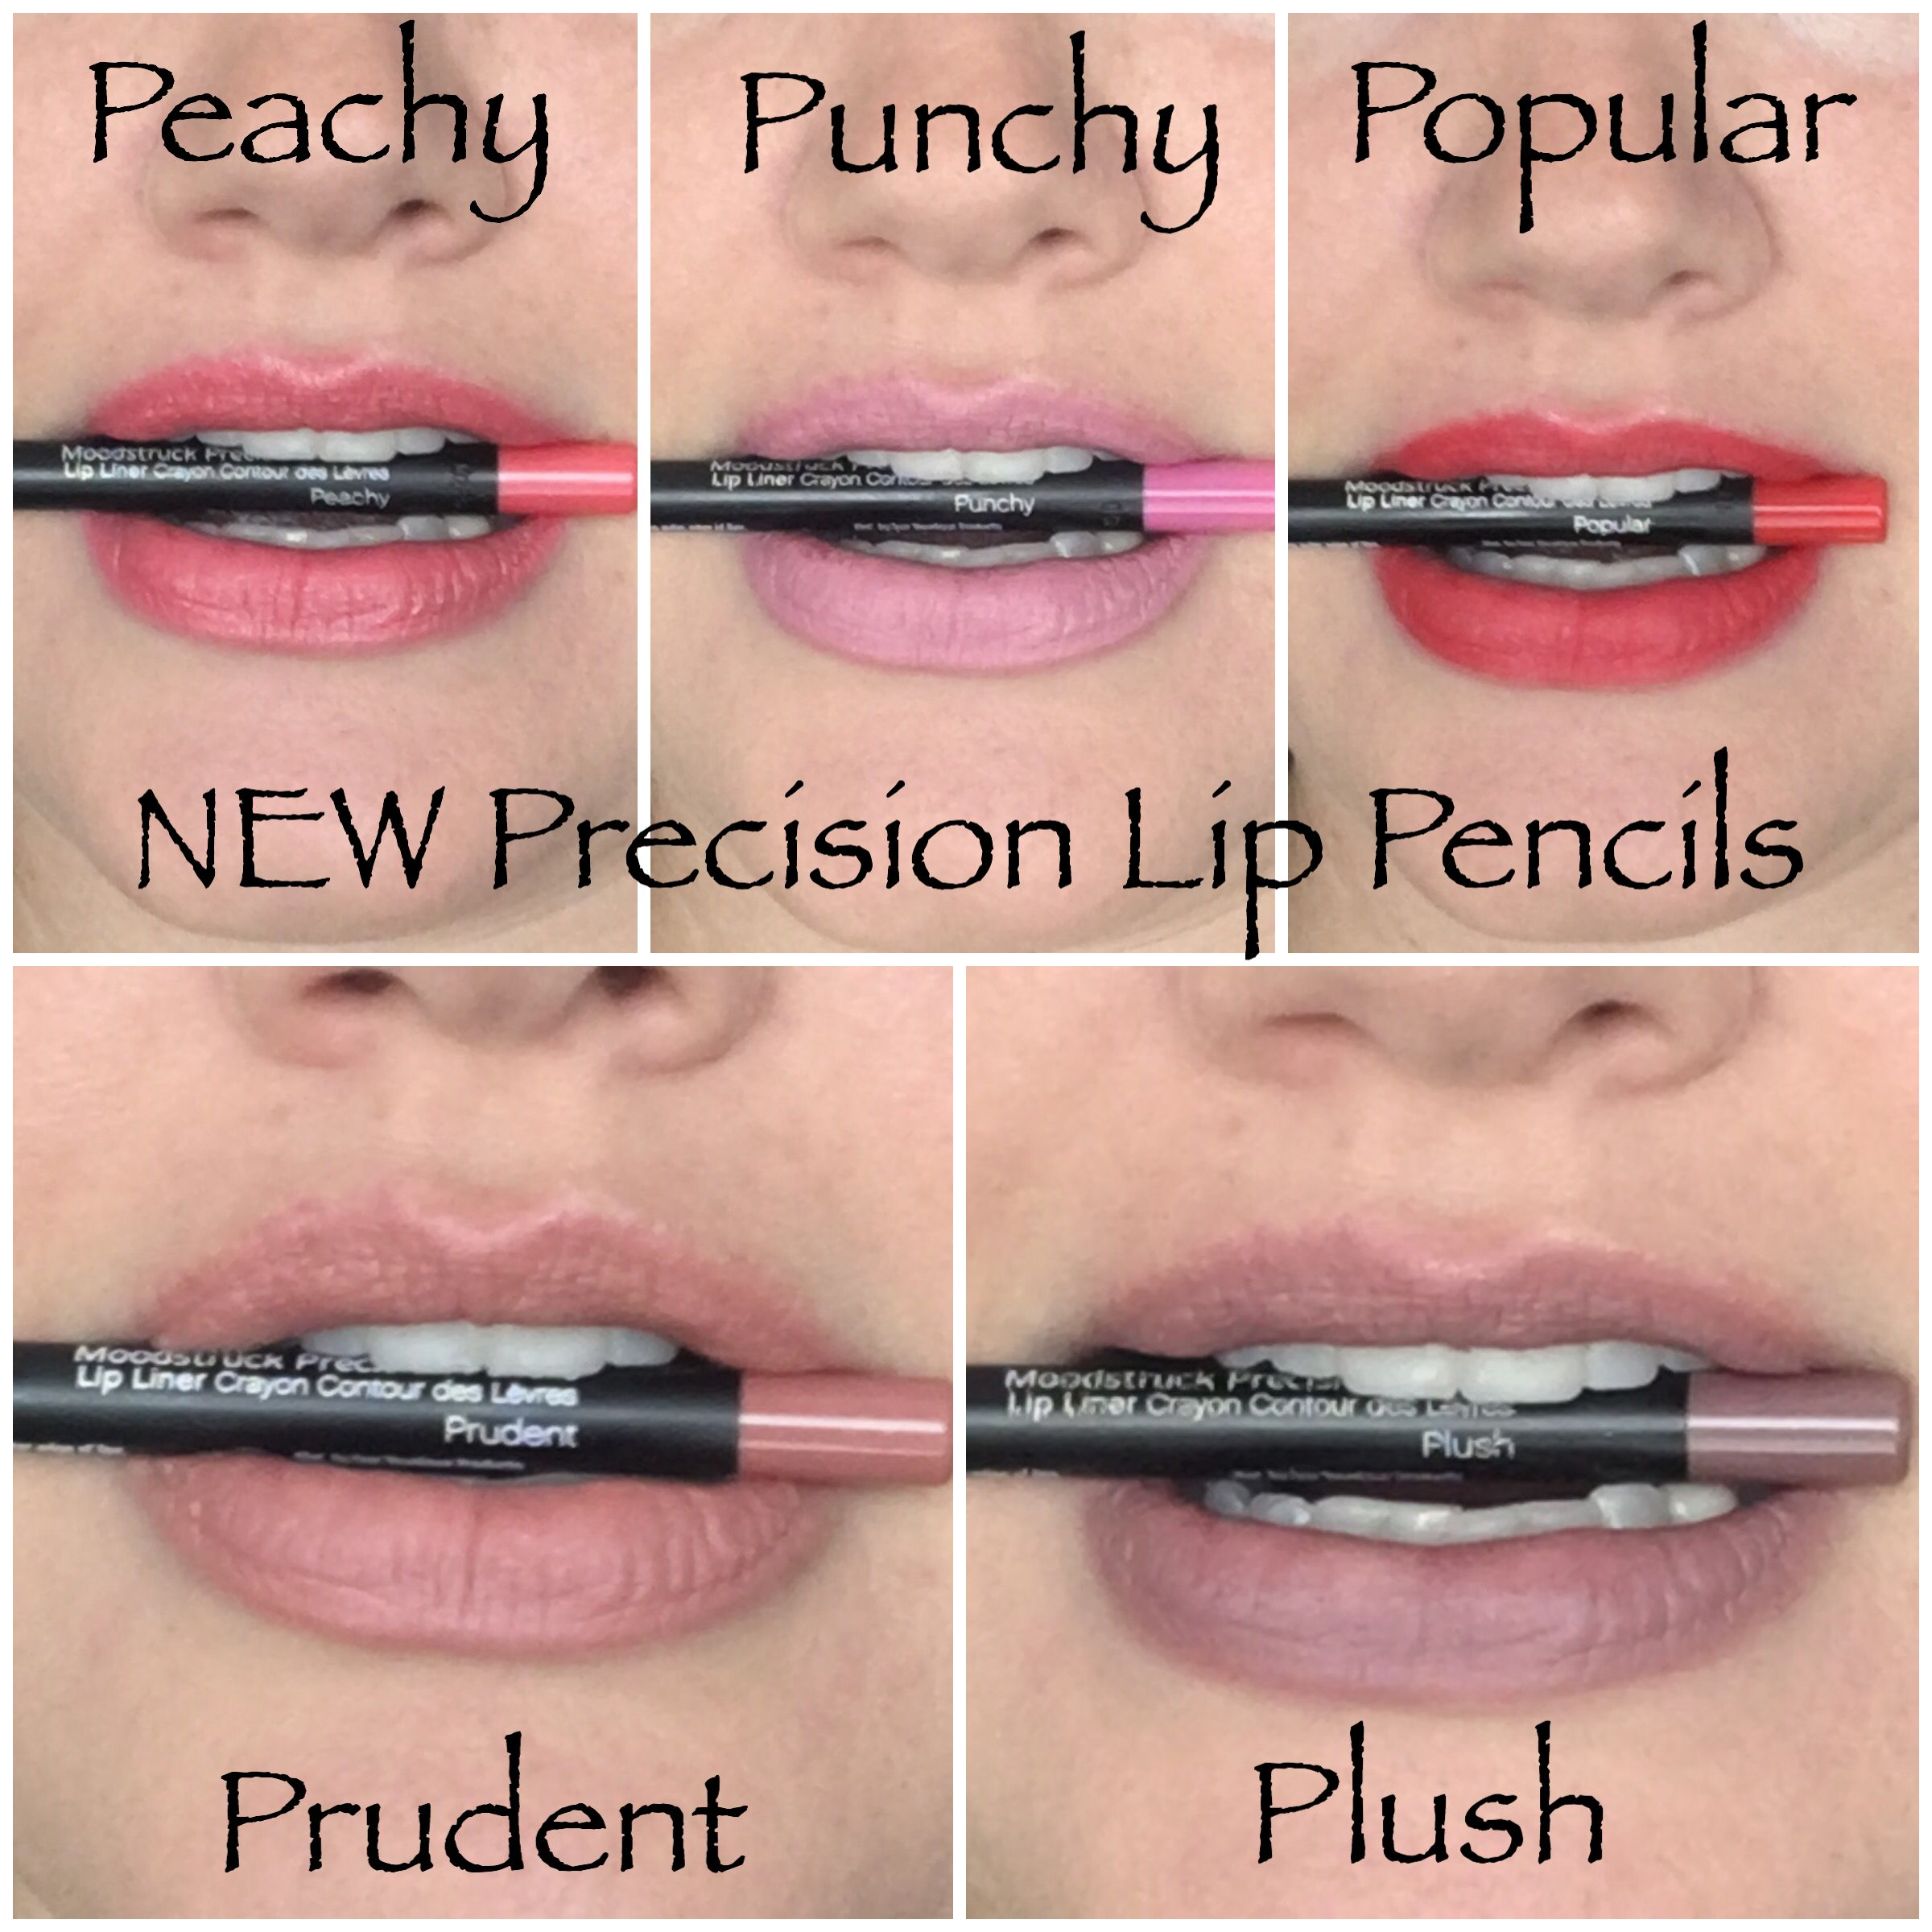 Brand new Younique Precision Lip Pencils! Released fall 2016. What's your favorite? #falllaunch #lipliner www.mzdivanailznlashes.com